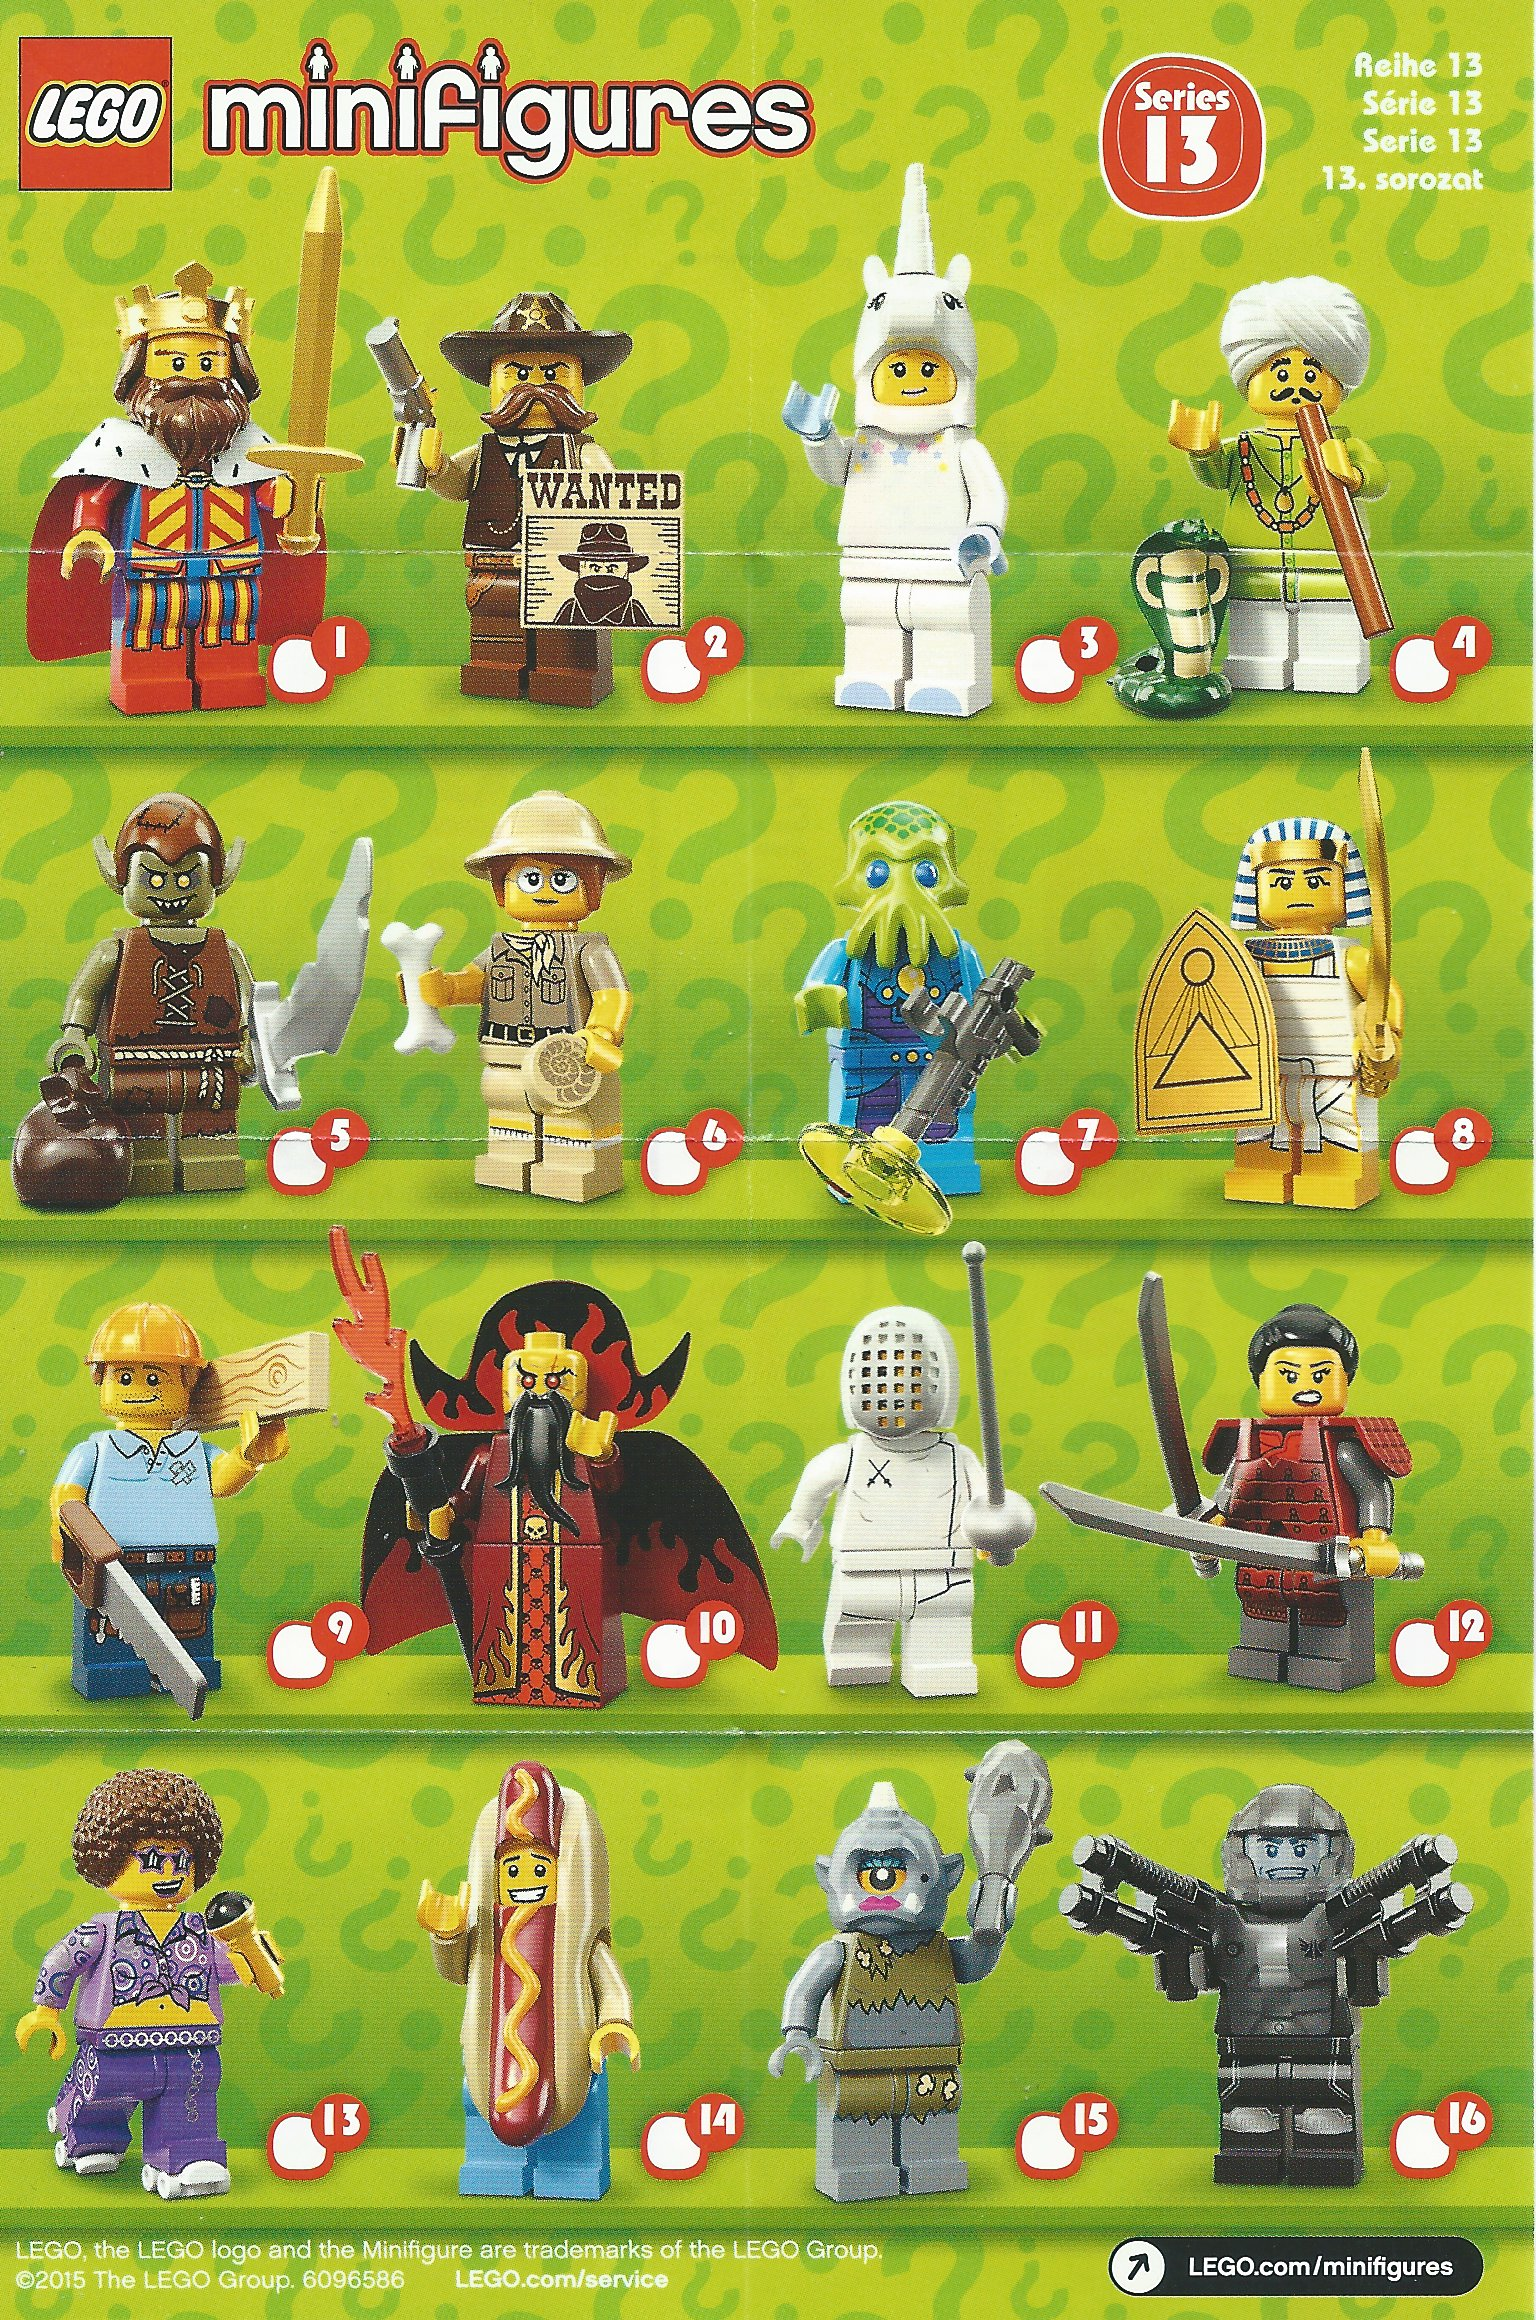 Lego Collectable Minifigure Series 13 Sheriff